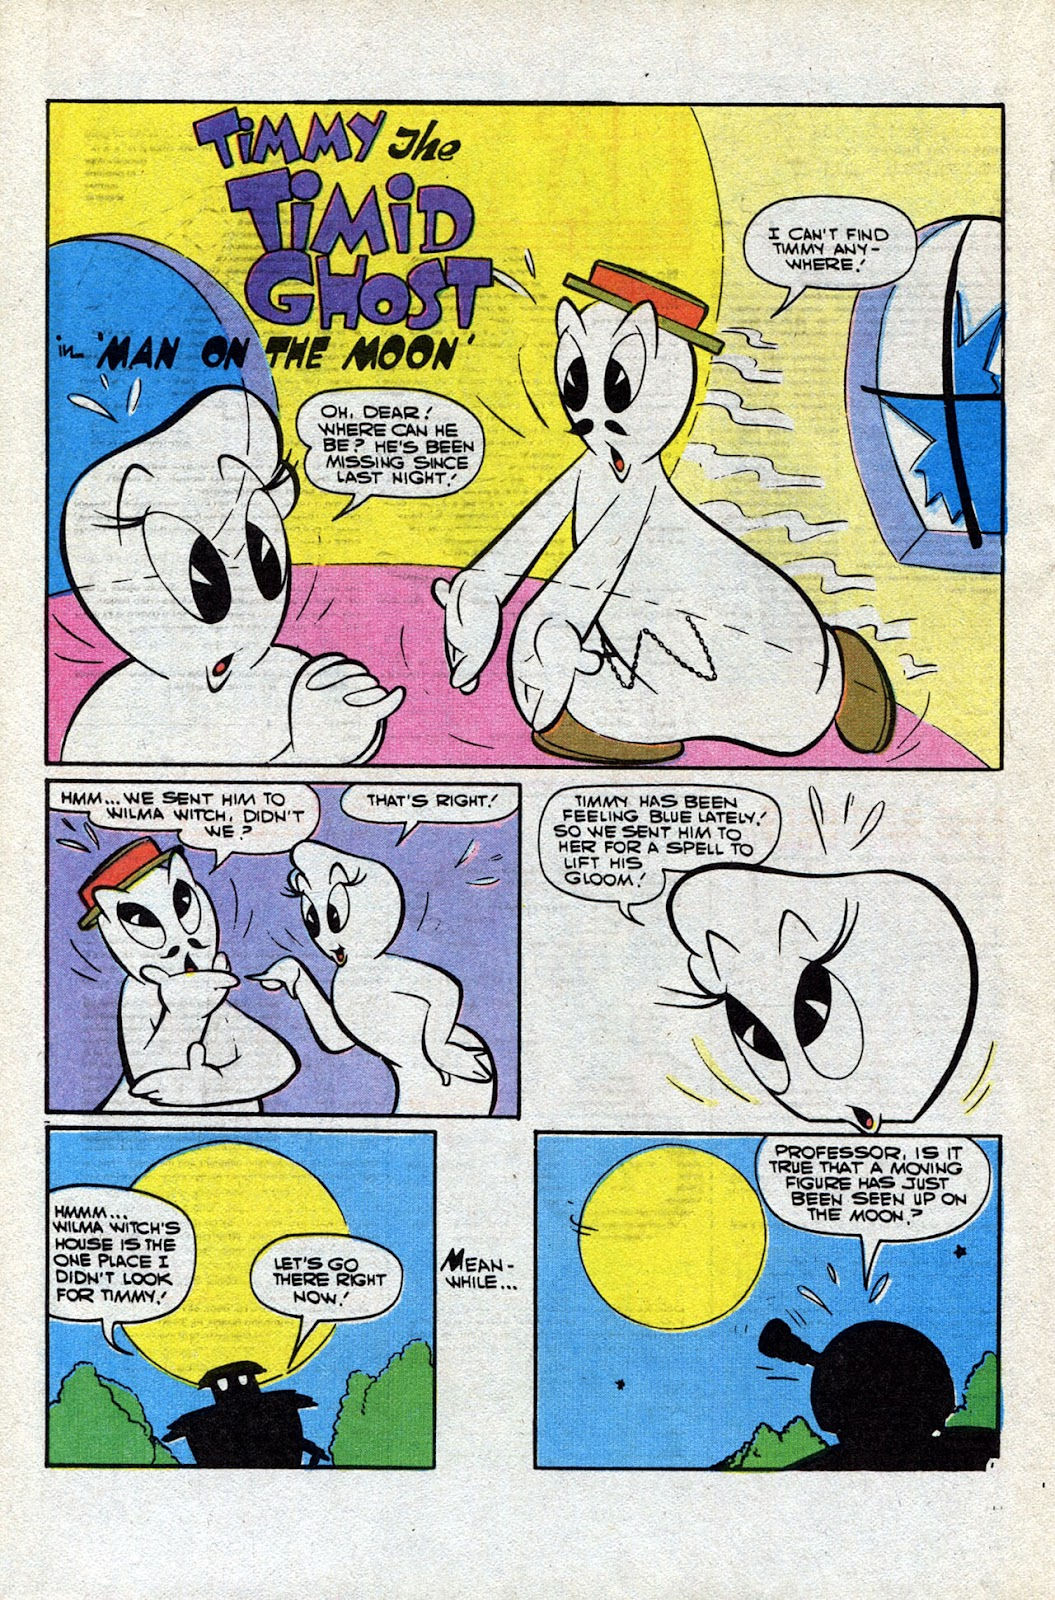 Read online Timmy the Timid Ghost comic -  Issue #25 - 16